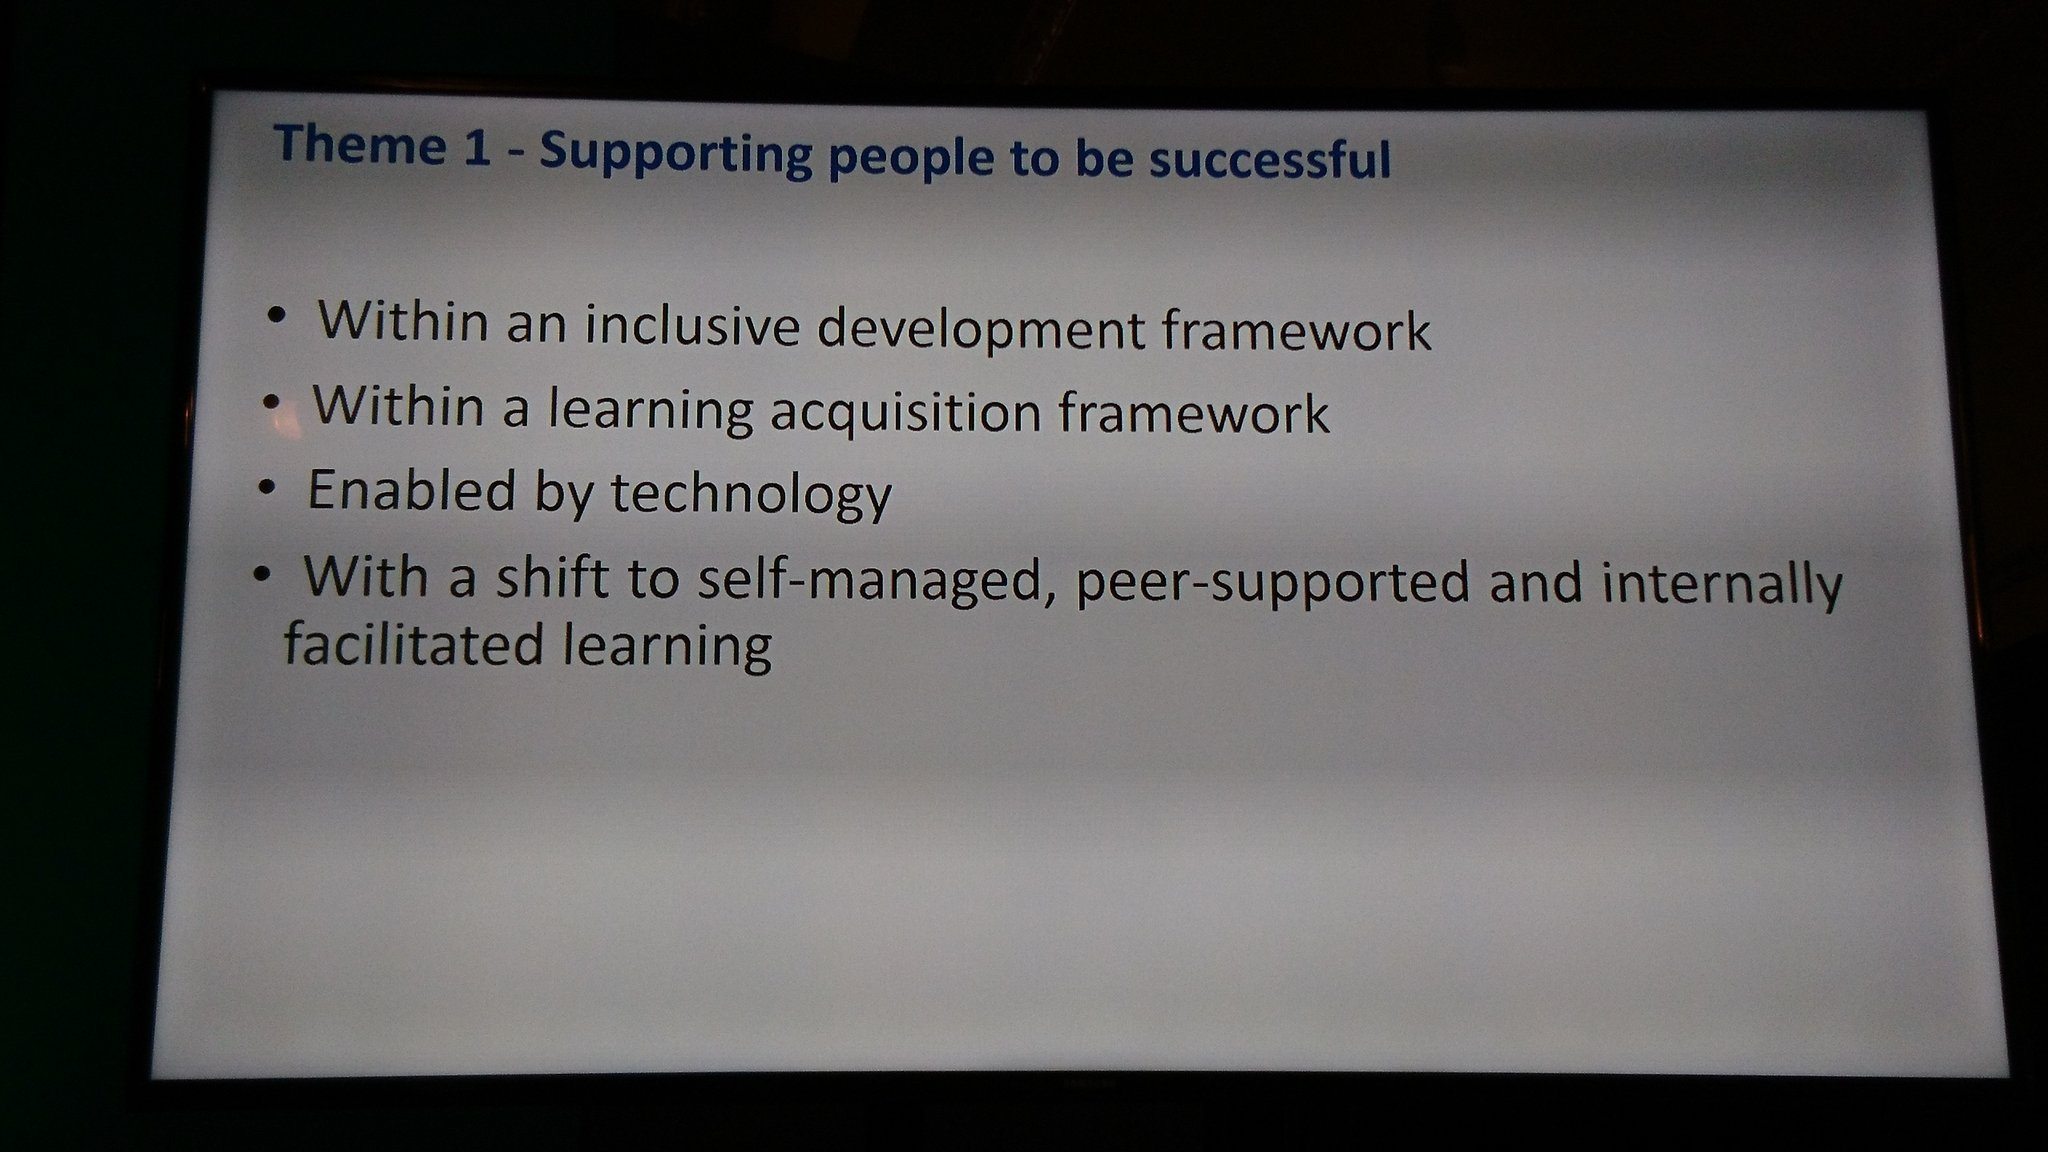 .@PriceKisskadee @sarahlindsell Theme 1 is supporting people. Everyone is a facilitator and a learner. Support each other in peer learning #G2 #cipdLDshow https://t.co/9yH2WPdYek